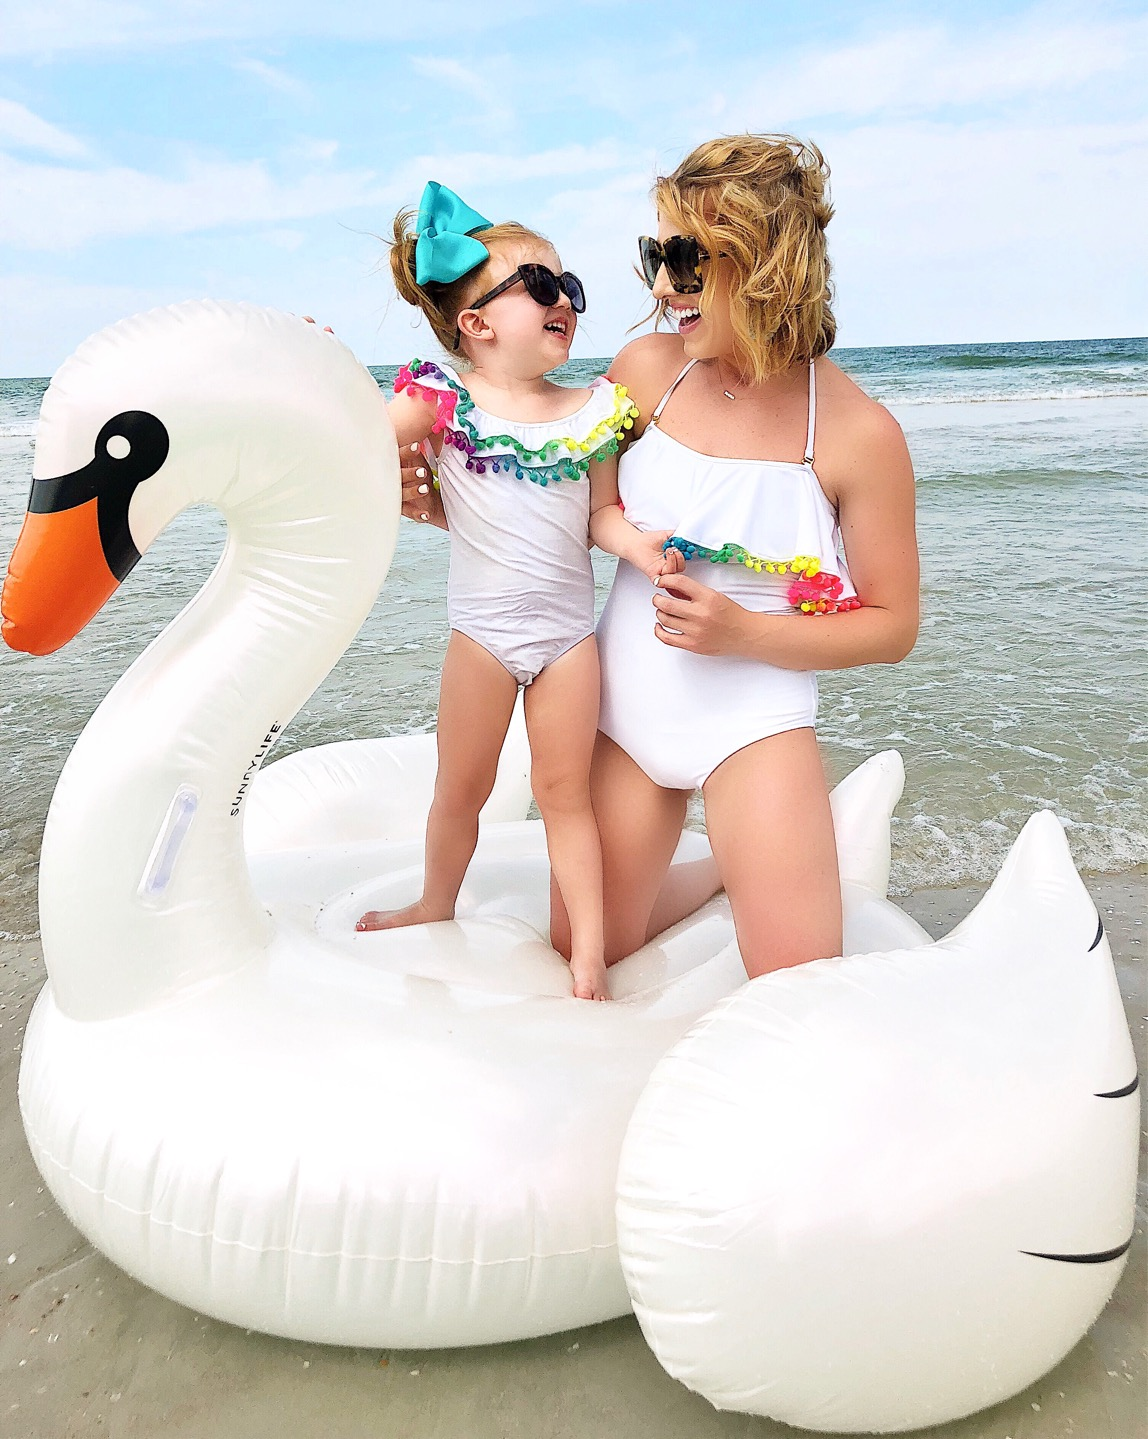 Mommy and Me Swimsuits - Something Delightful Blog